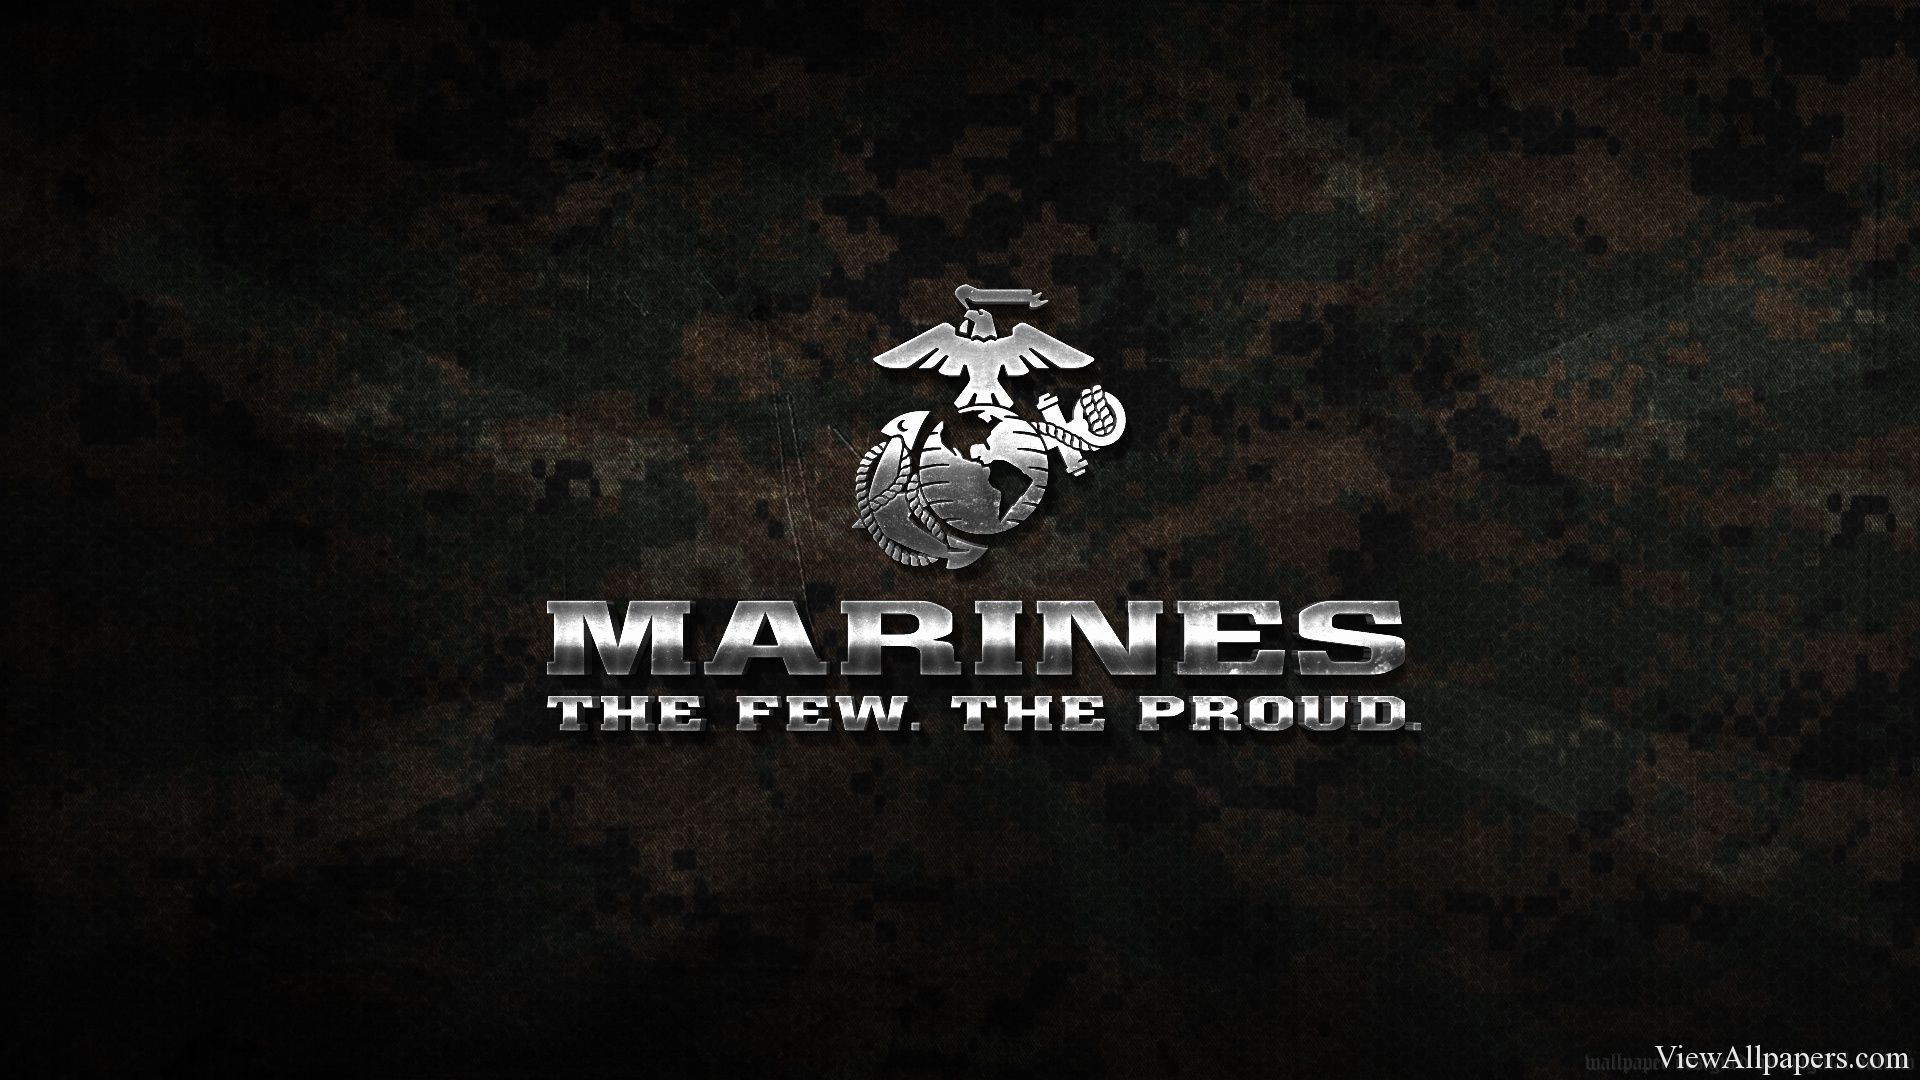 Marine Corps Logo High Resolution, Free Download Marine Corps Logo For Pc